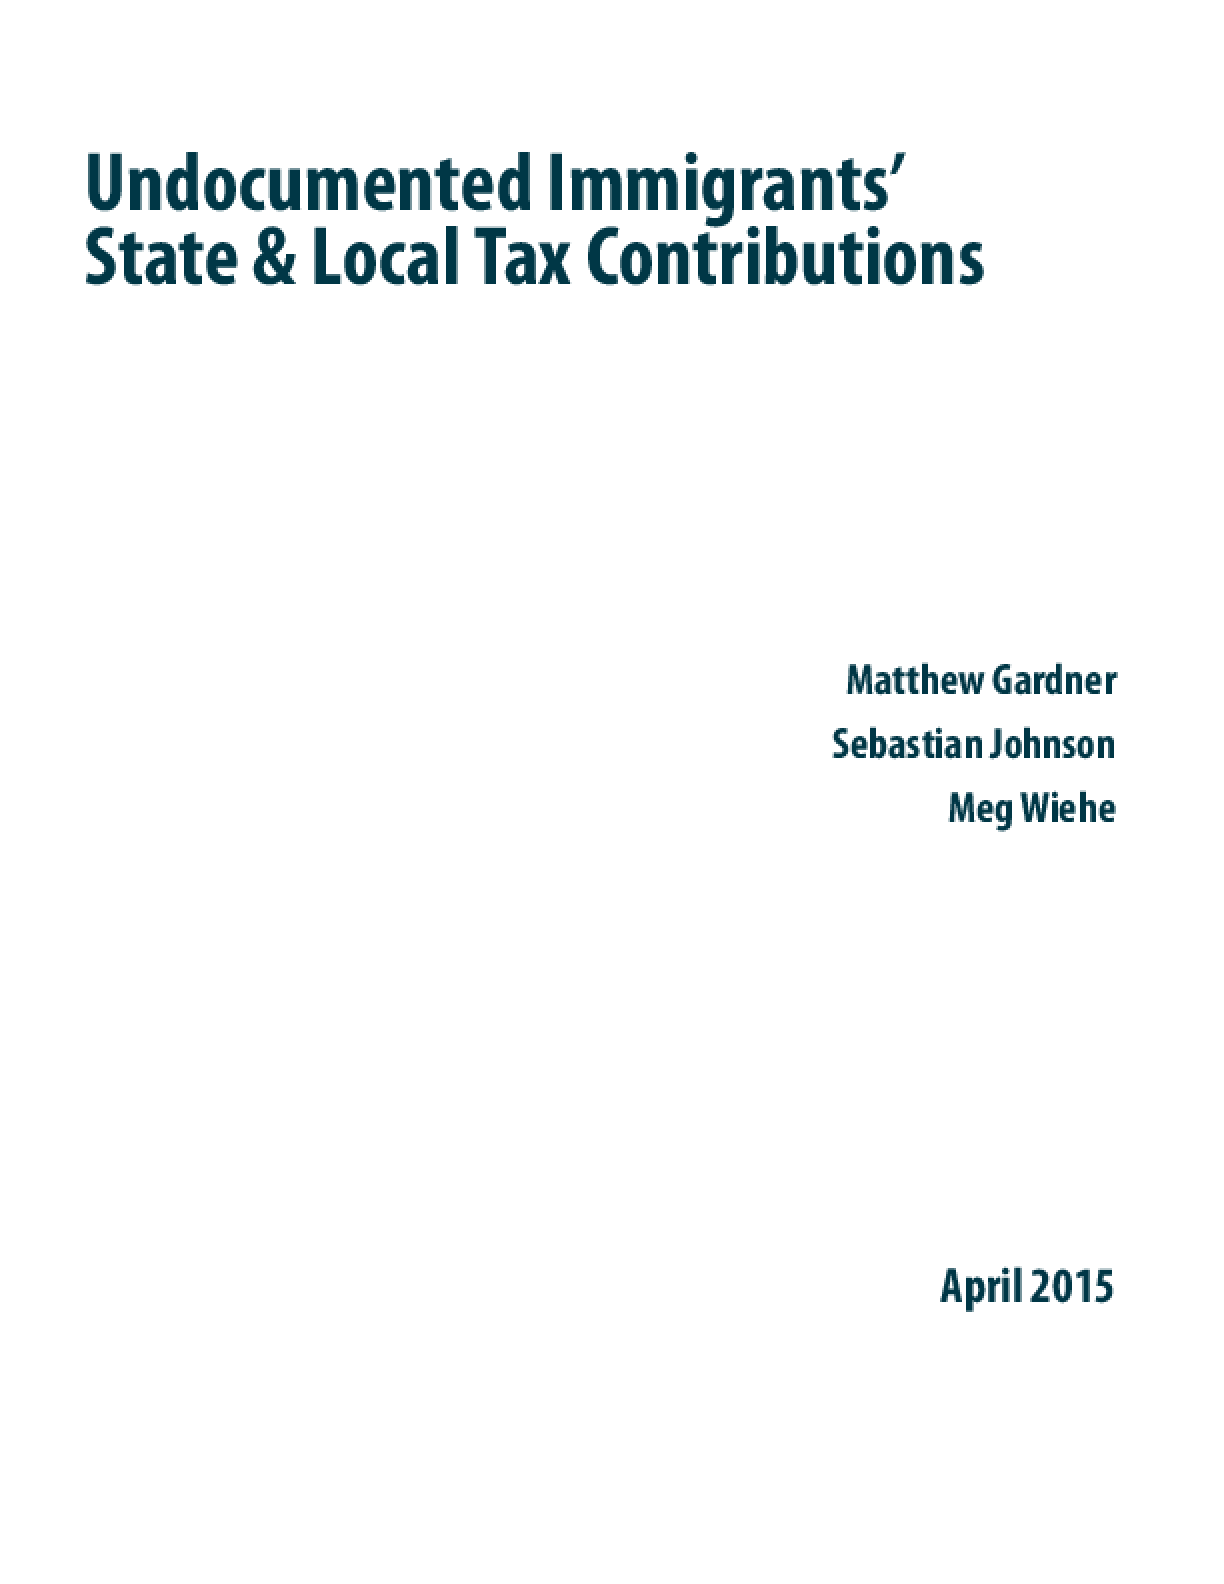 Undocumented Immigrants' State and Local Tax Contributions